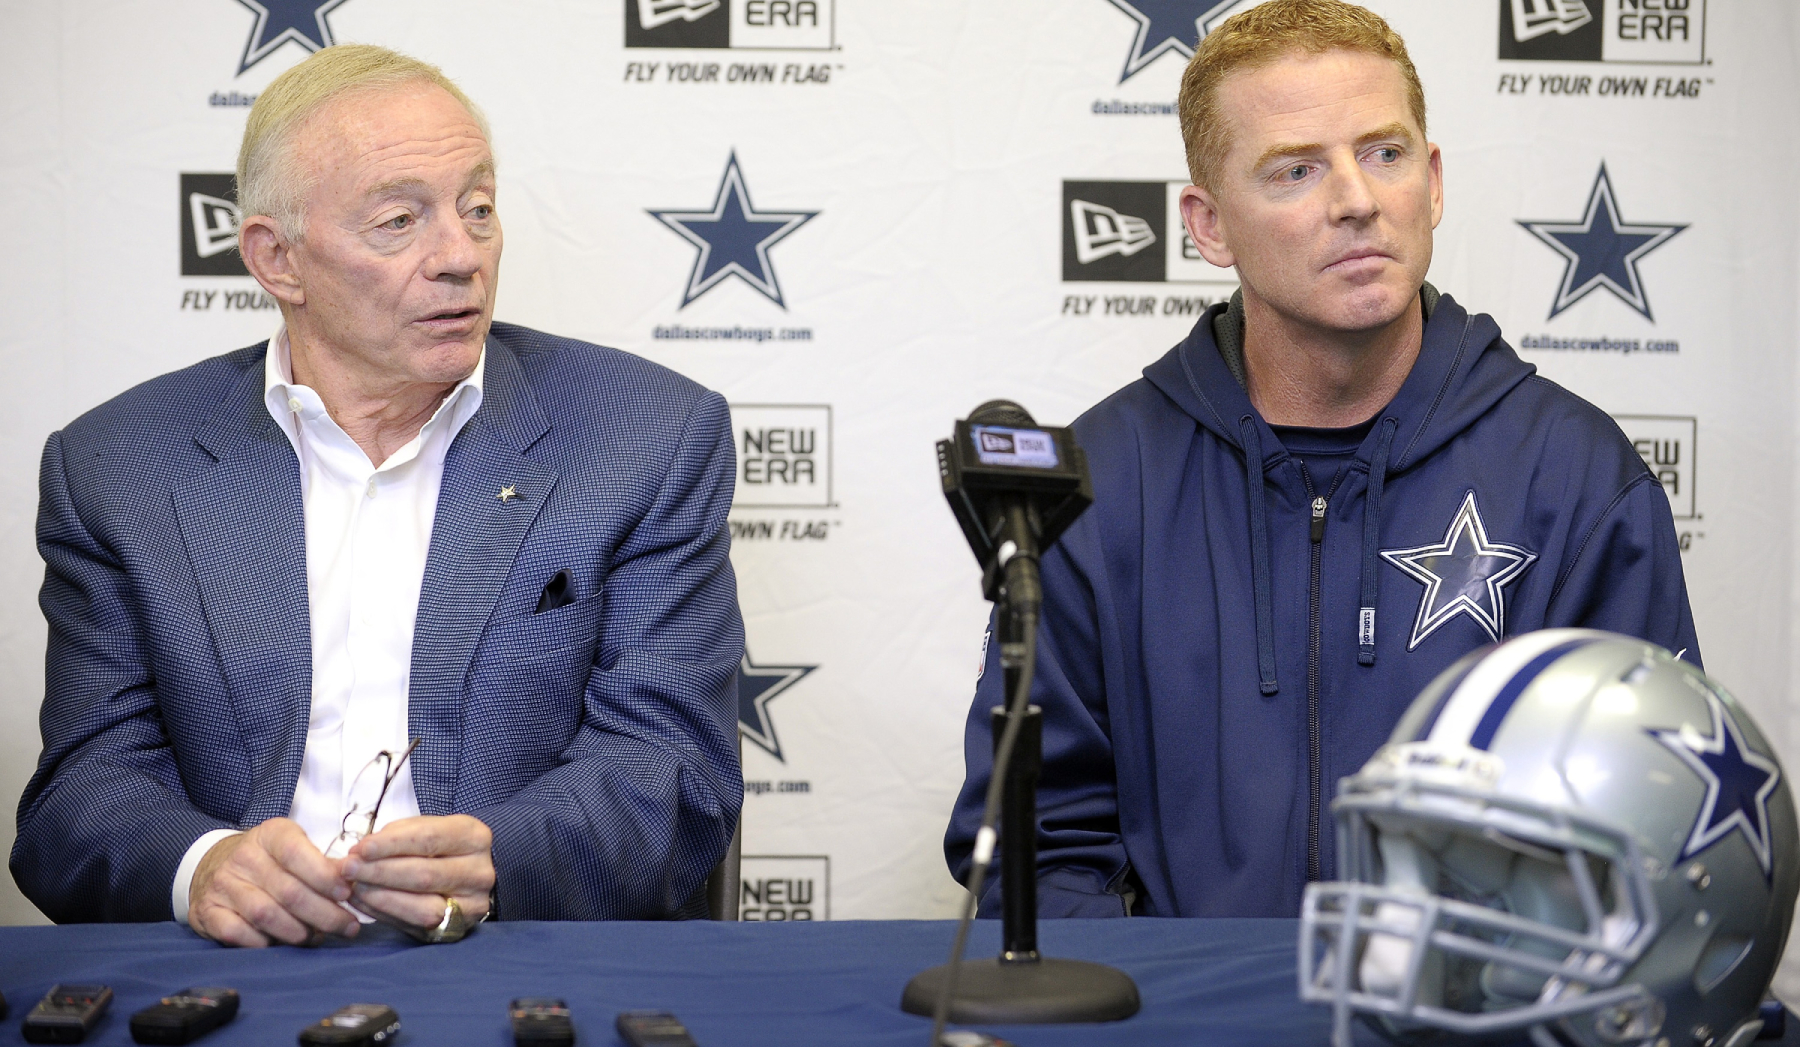 Jason Garrett was the Cowboys coach for over nine seasons. Mike McCarthy is now the coach but Jerry Jones just took a subtle shot at Garrett.